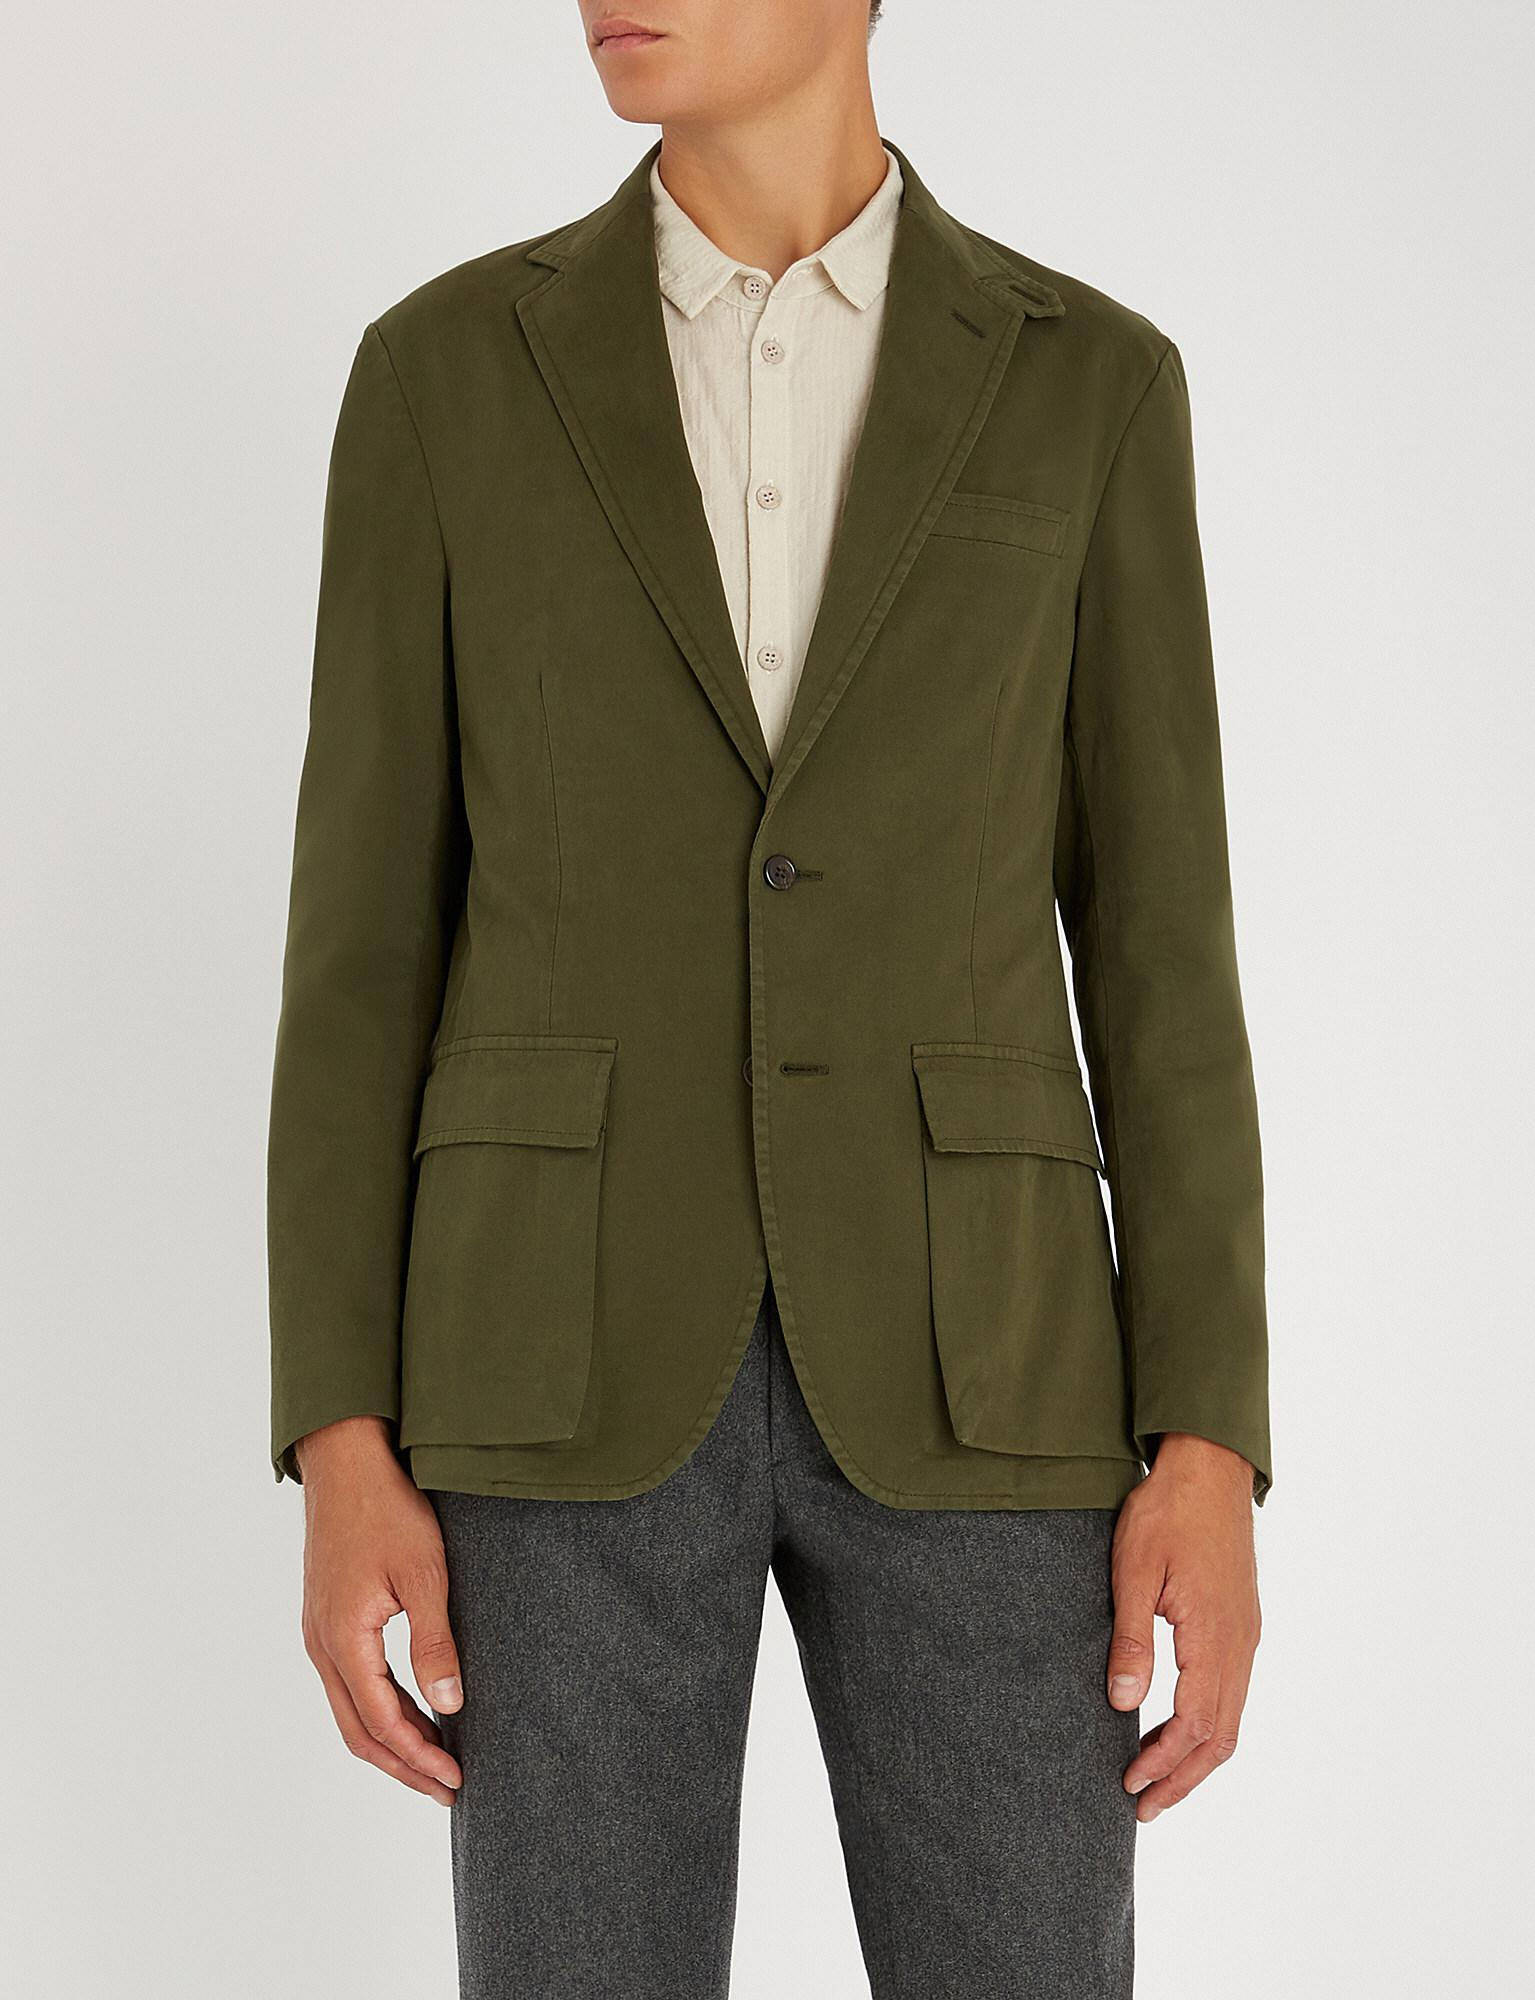 654afc8d Polo Ralph Lauren Single-breasted Cotton Blend Jacket in Green for ...